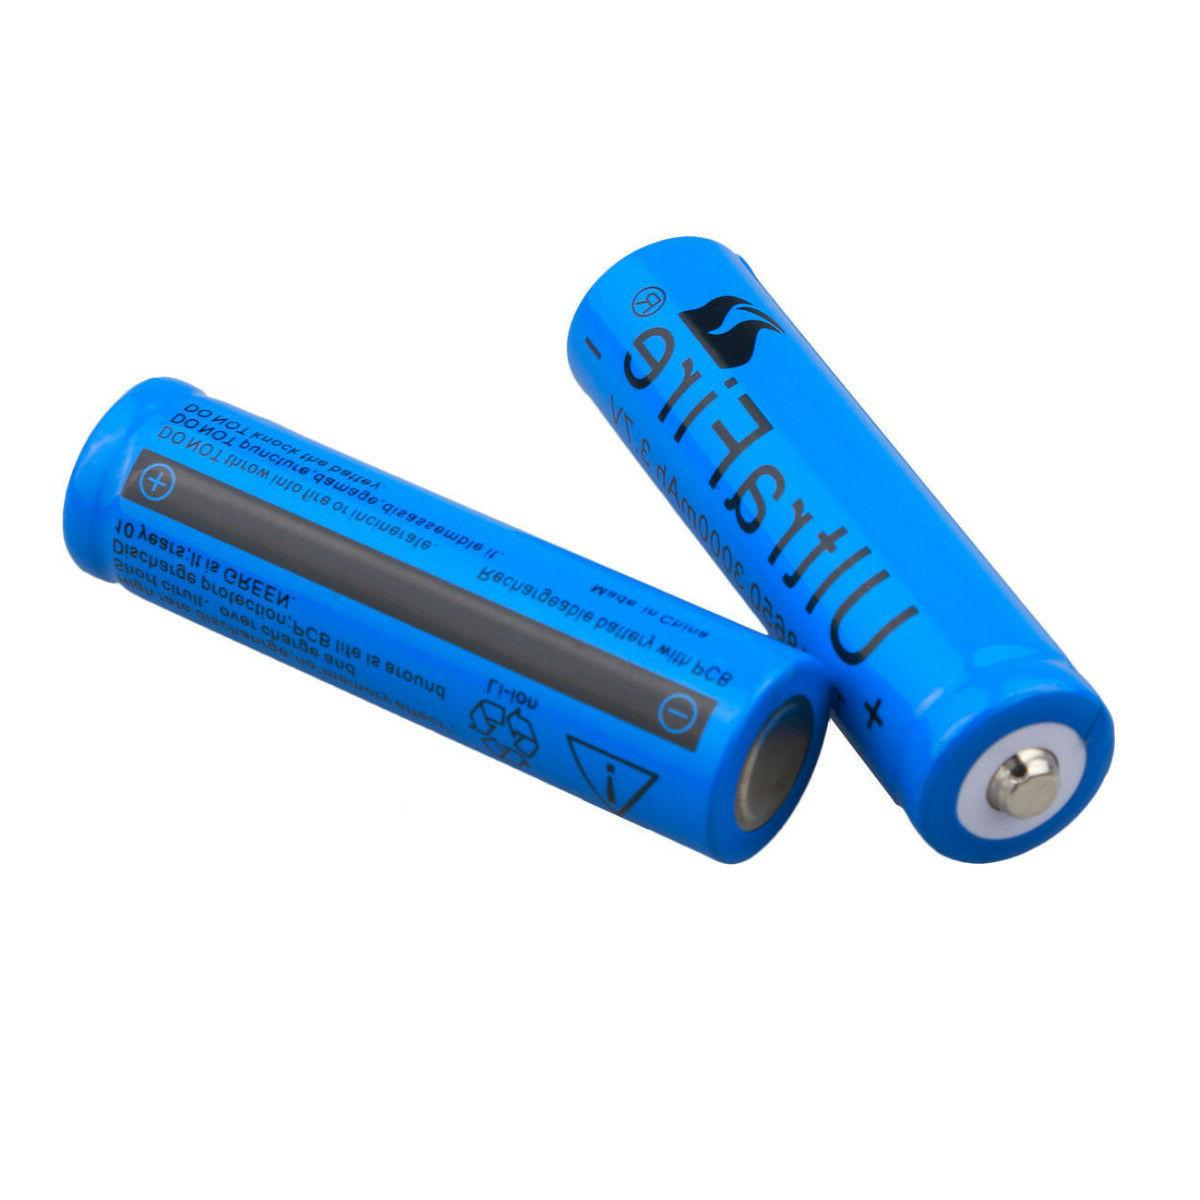 2pc Battery 3.7v Li-ion Batteries + Charger